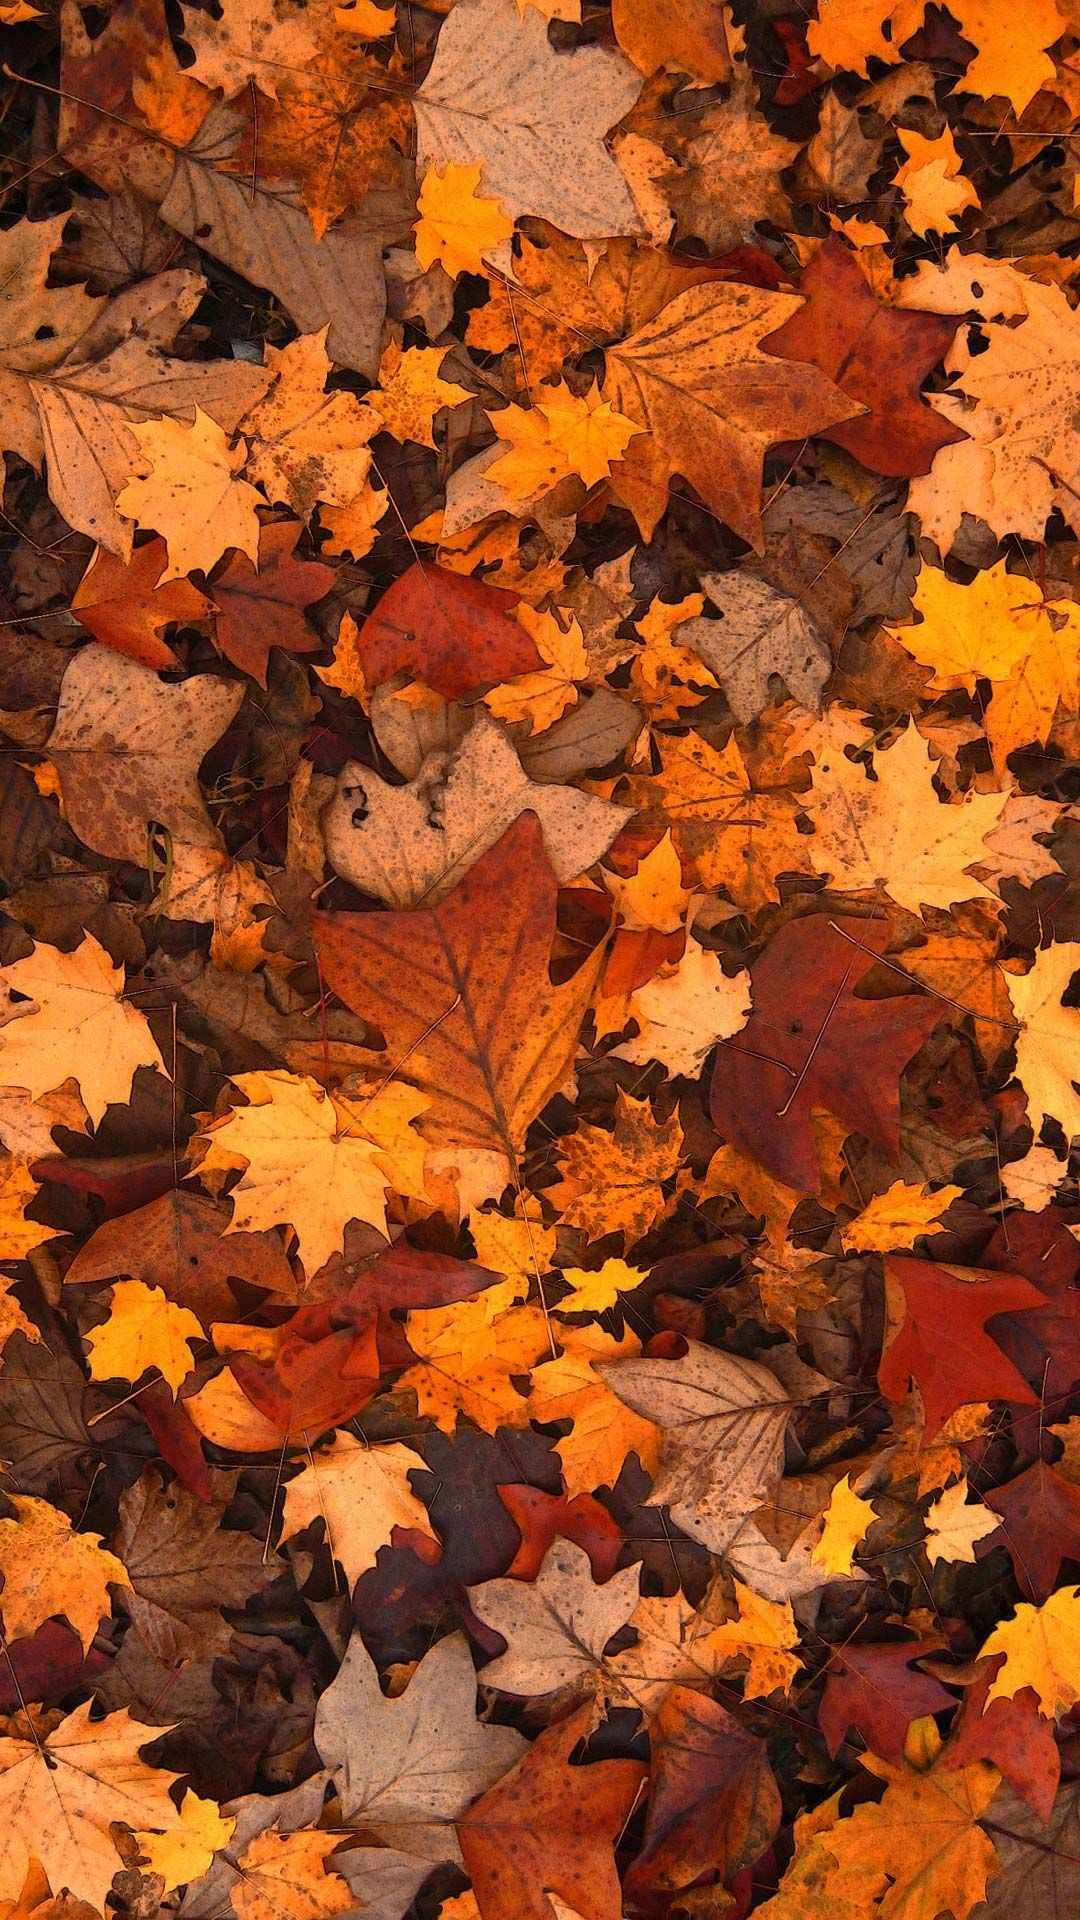 20 Fall Foliage Wallpaper Phone Backgrounds For Free Download Cute Fall Wallpaper Iphone Wallpaper Fall Fall Wallpaper